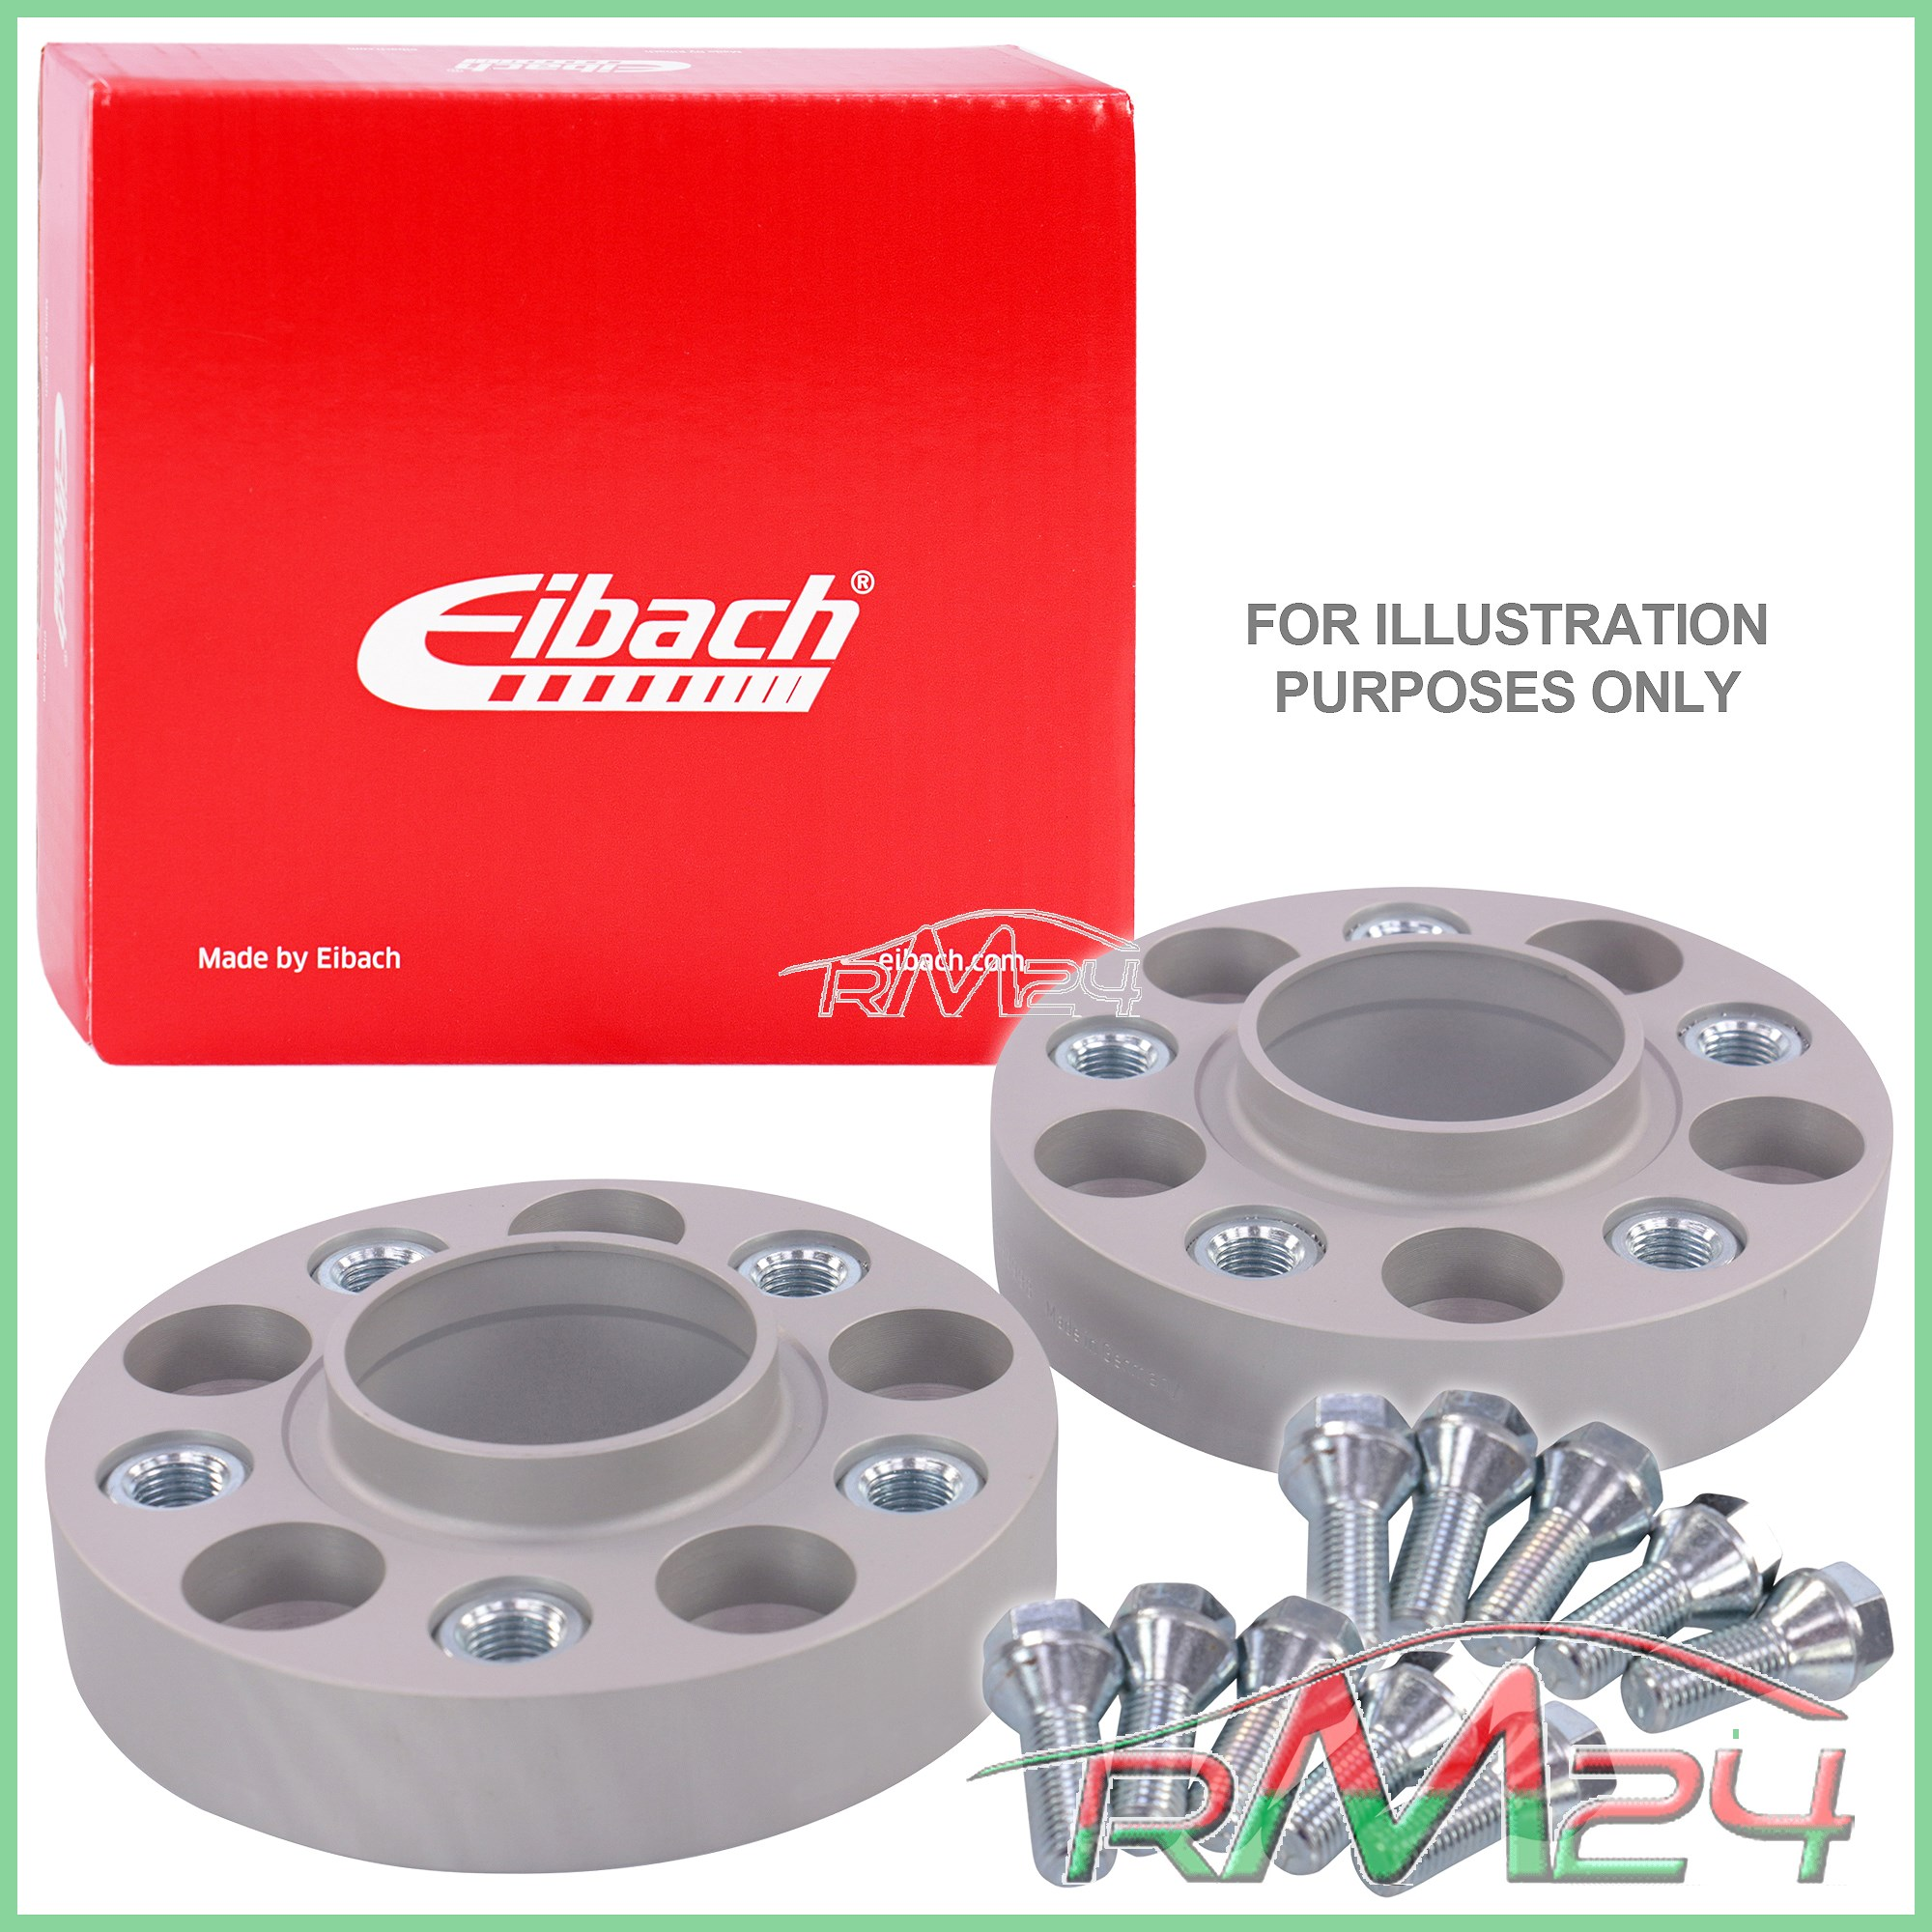 EIBACH passaruota per Smart s90-1-05-026 pro-Spacer System 1 10mm